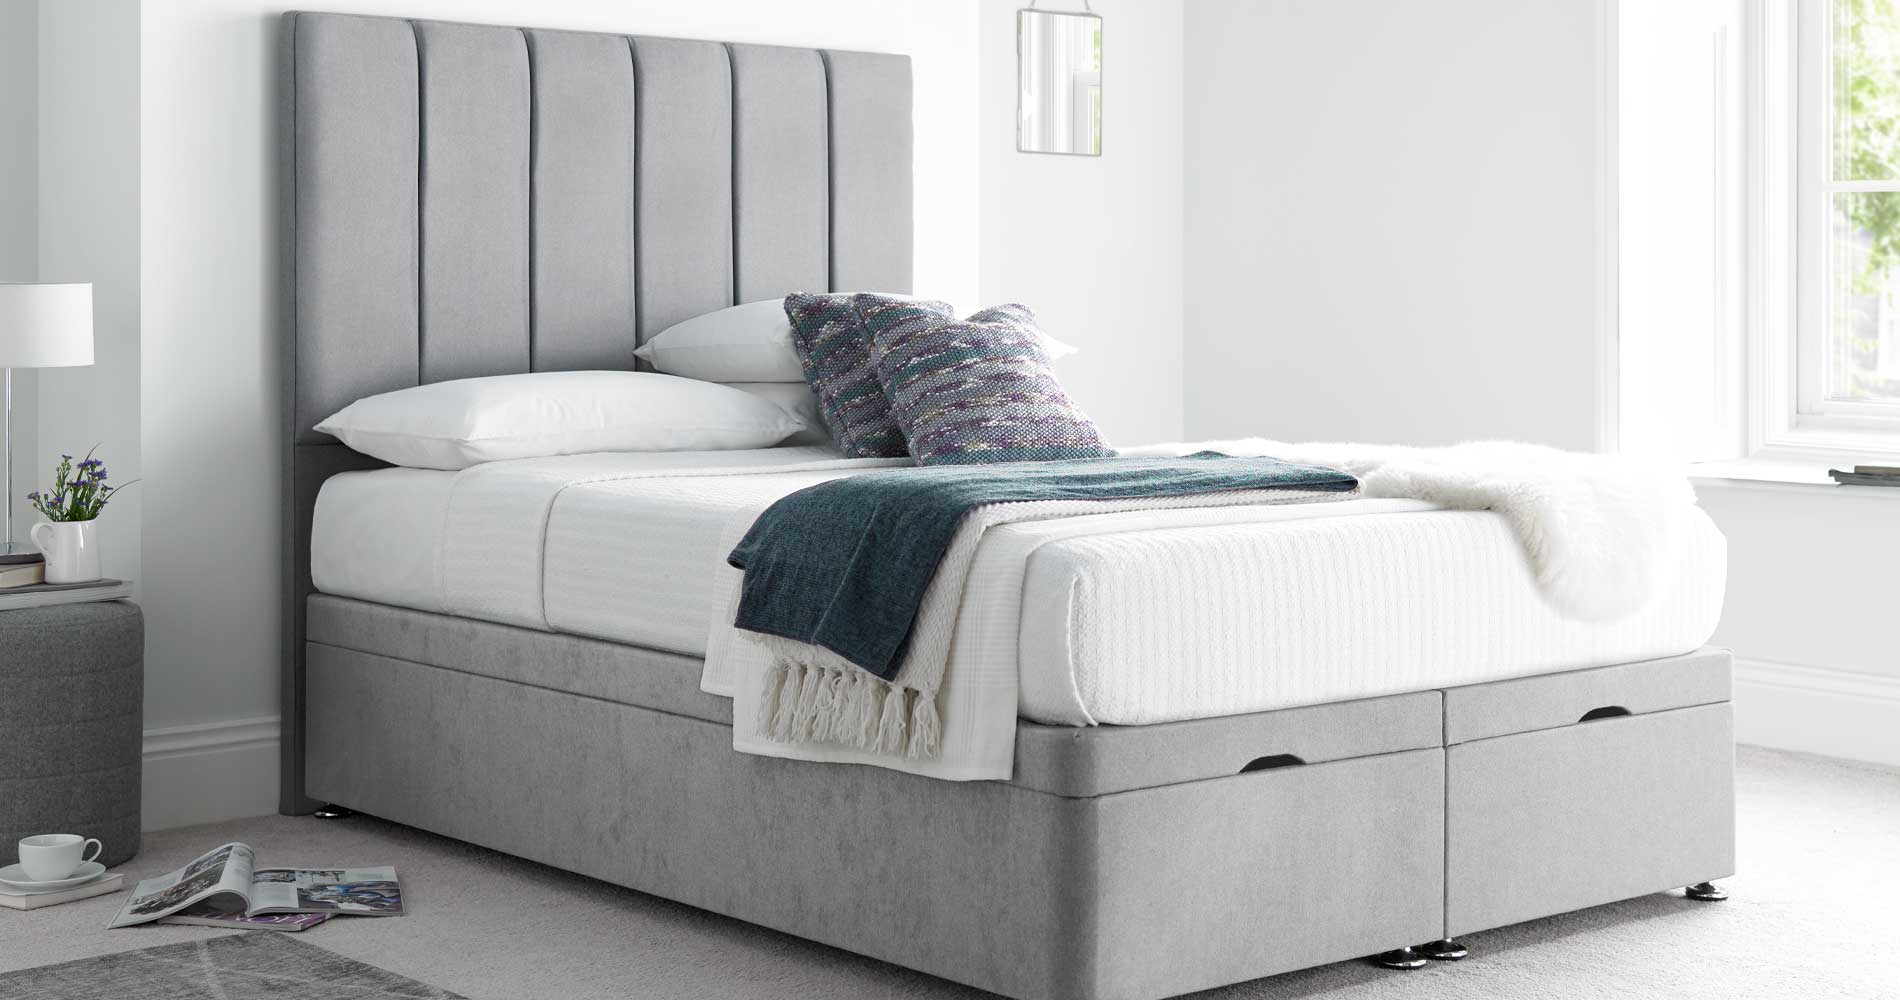 4ft Small Double Beds